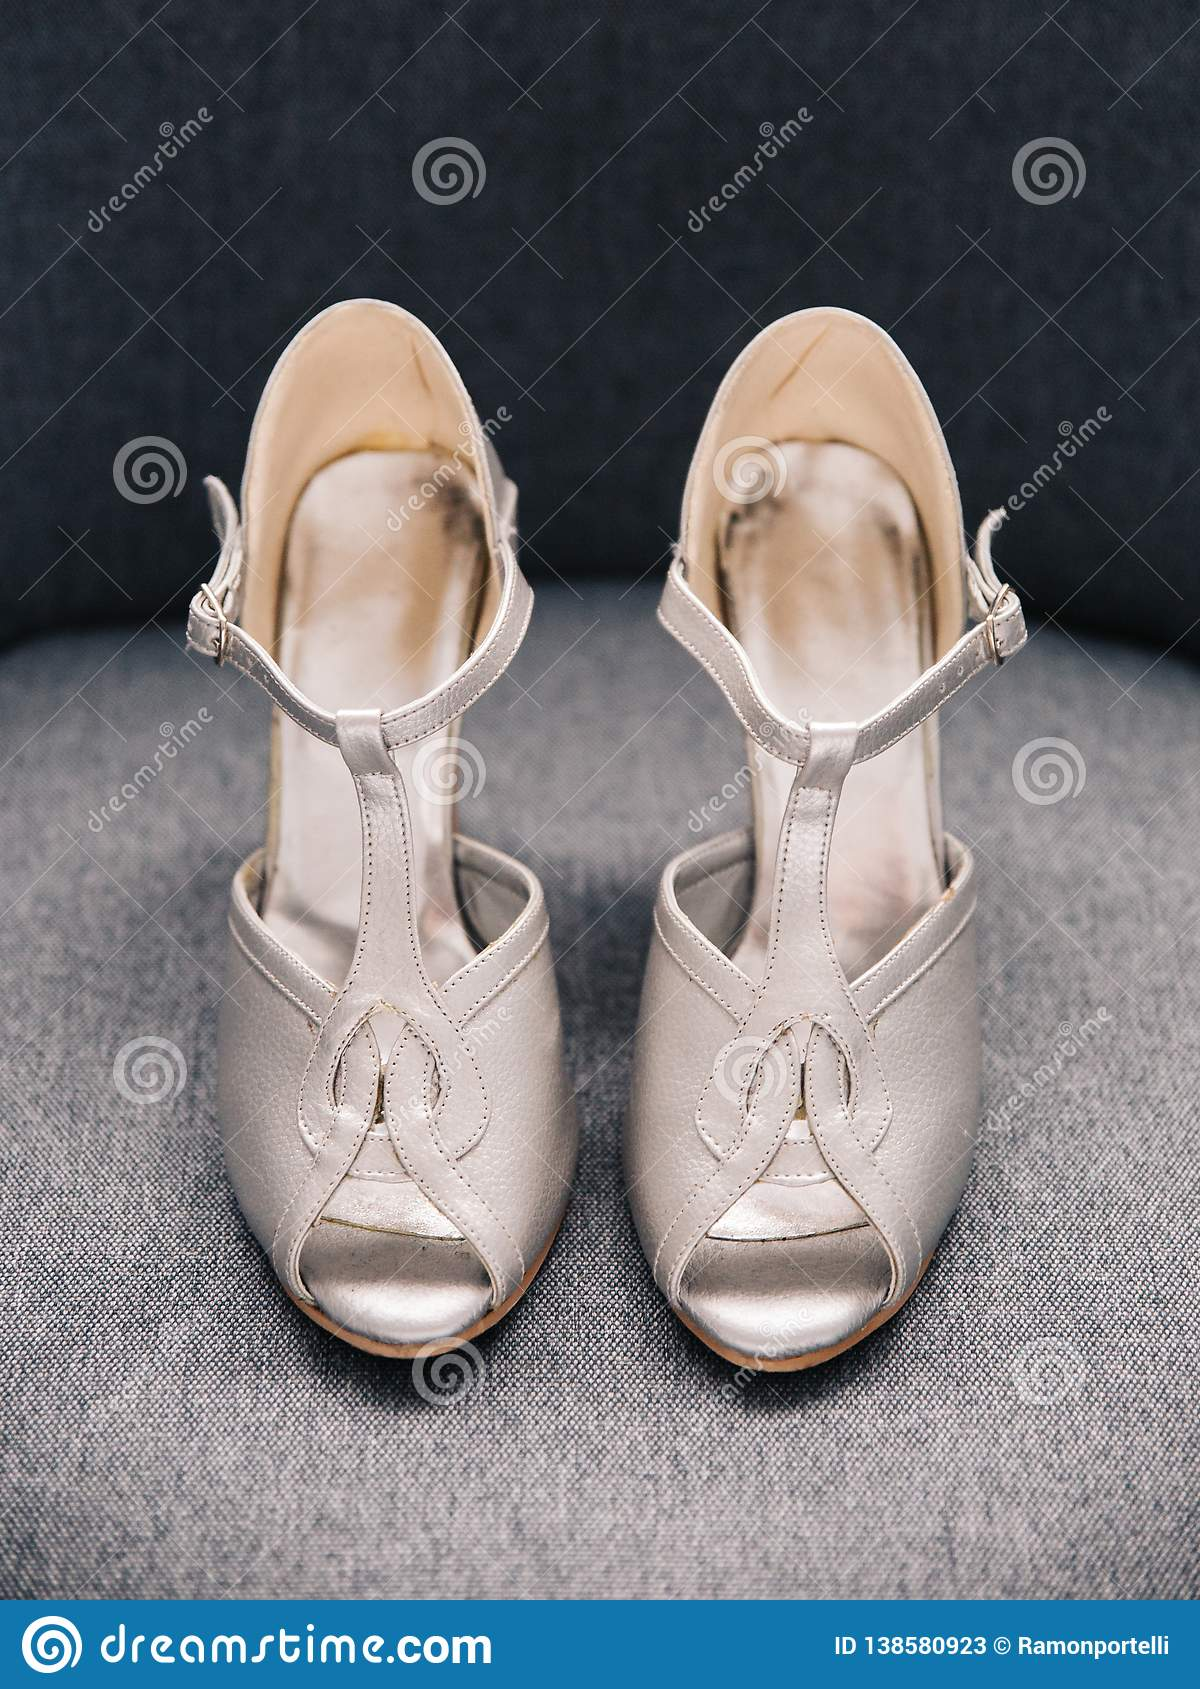 Pair of silver female high heeled wedding shoes